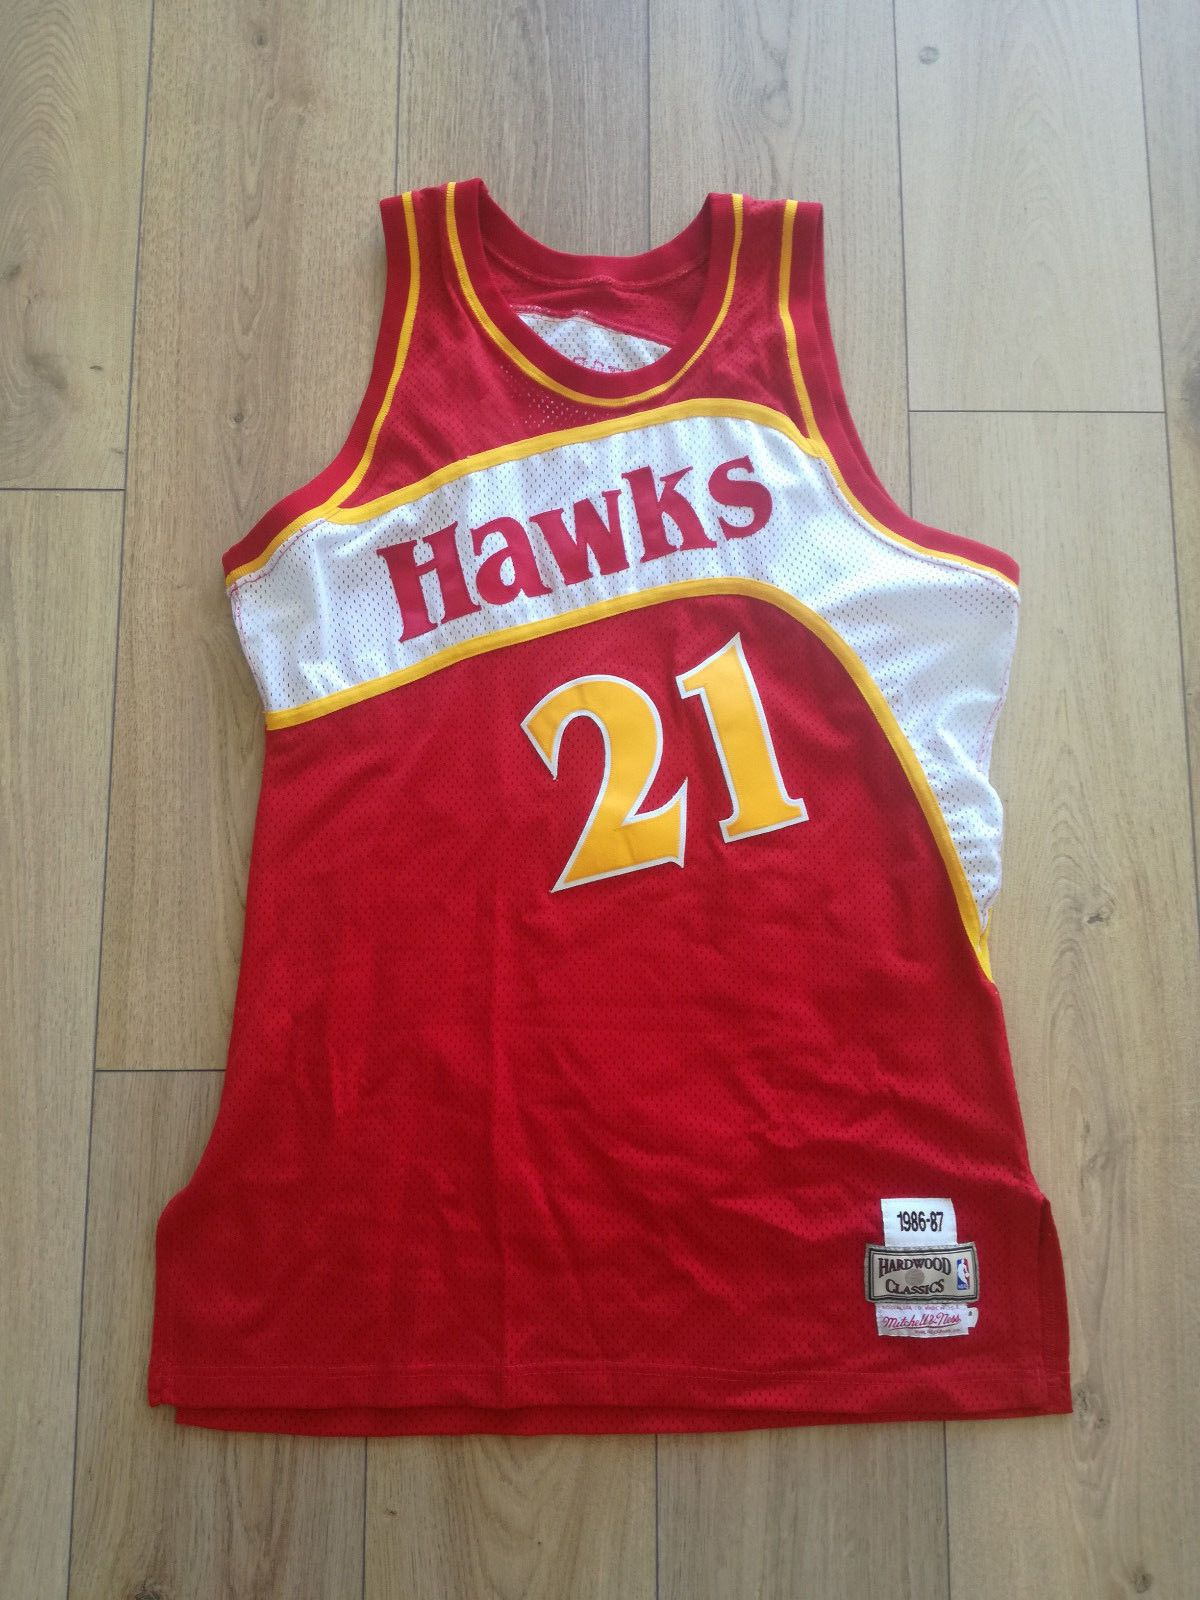 f015d0a49 Dominique Wilkins Mitchell and Ness Hawks Authentic Jersey 48 made in USA  (eBay Link)